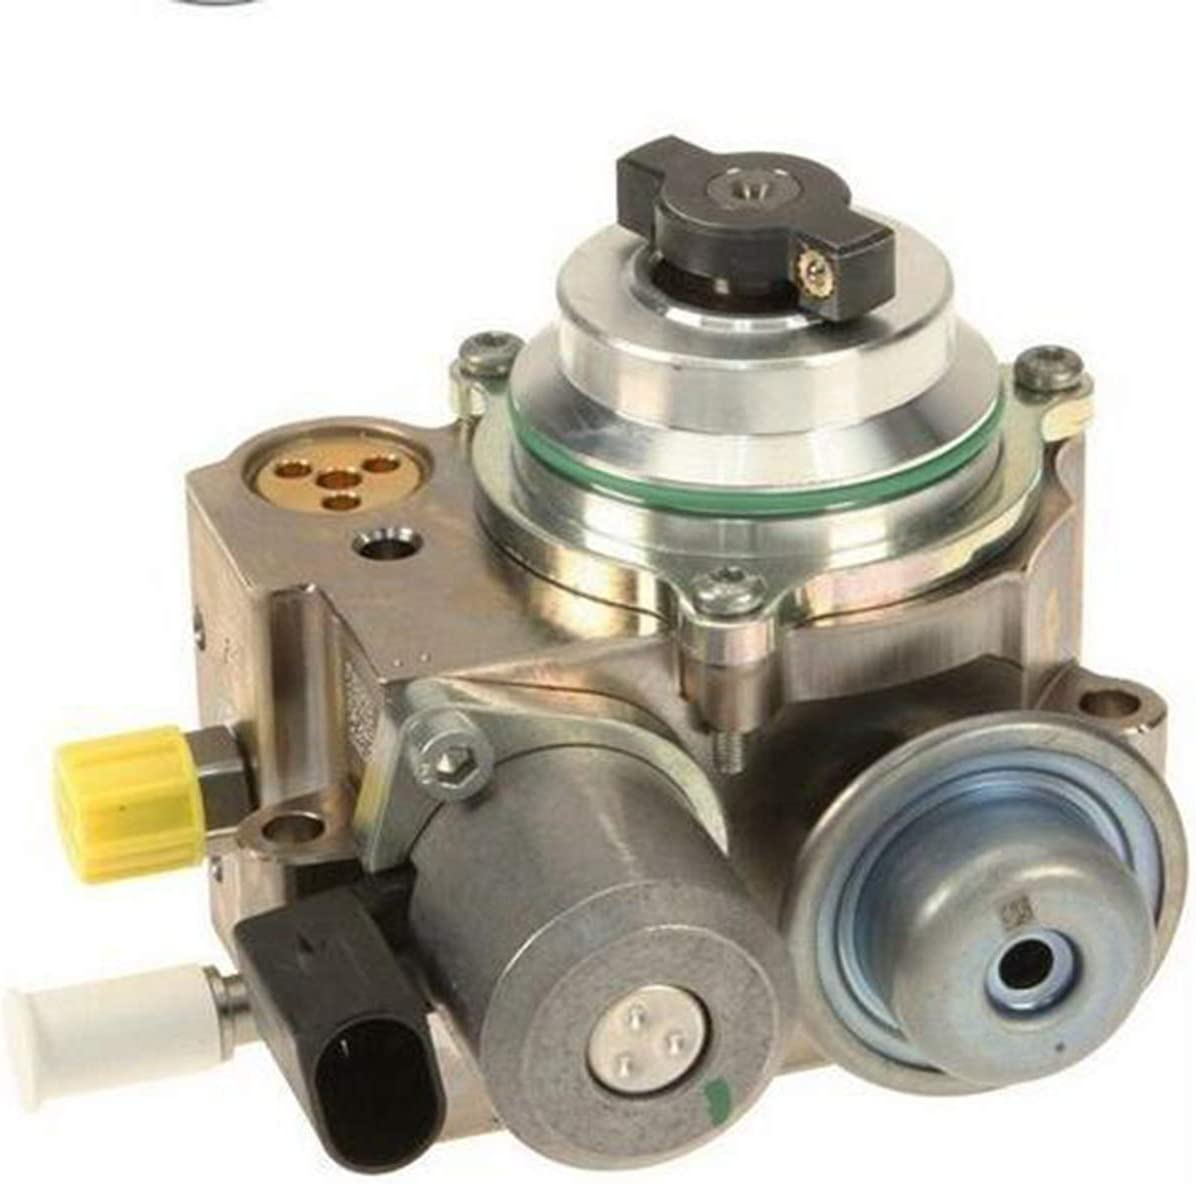 RSTFA OEM High Pressure Pump for Recommendation R55 1.6T R57 Cooper R58 R59 R56 New products world's highest quality popular